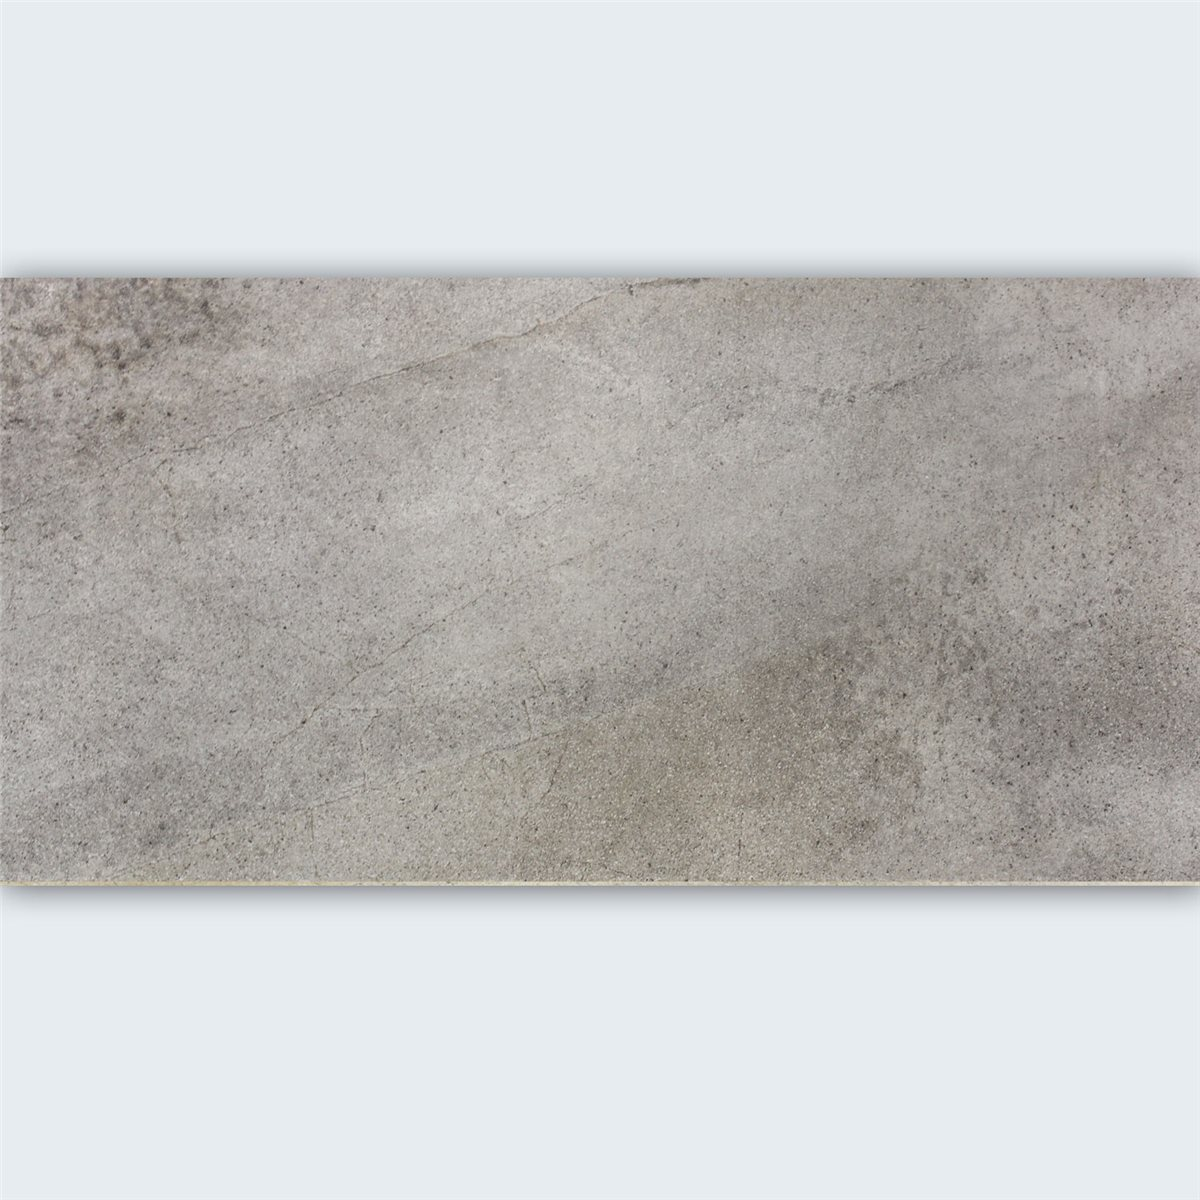 Floor Tiles Padua Grey 30x60cm